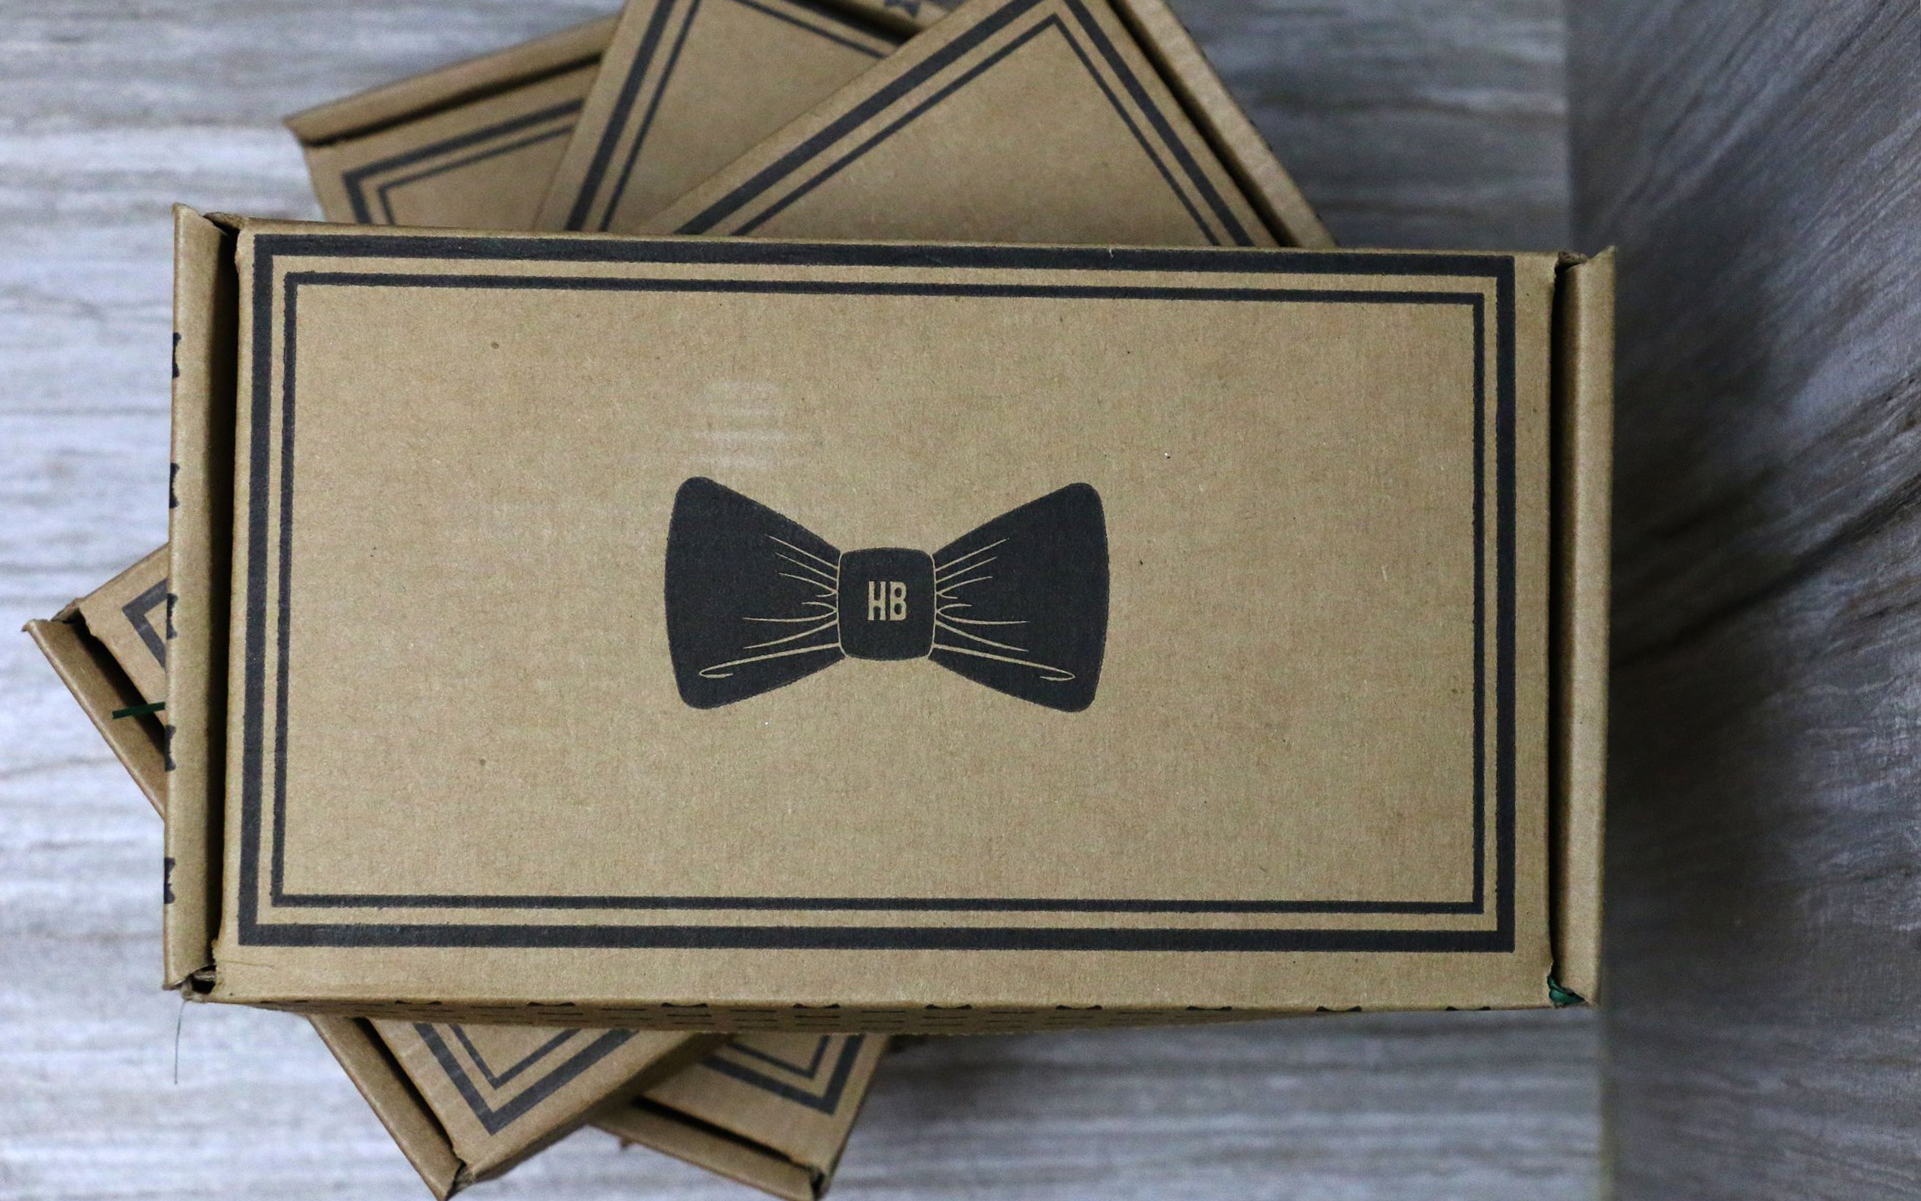 ce91015198c 9 Cannabis Subscription Boxes Worth the Price   Leafly - Weedguide ...